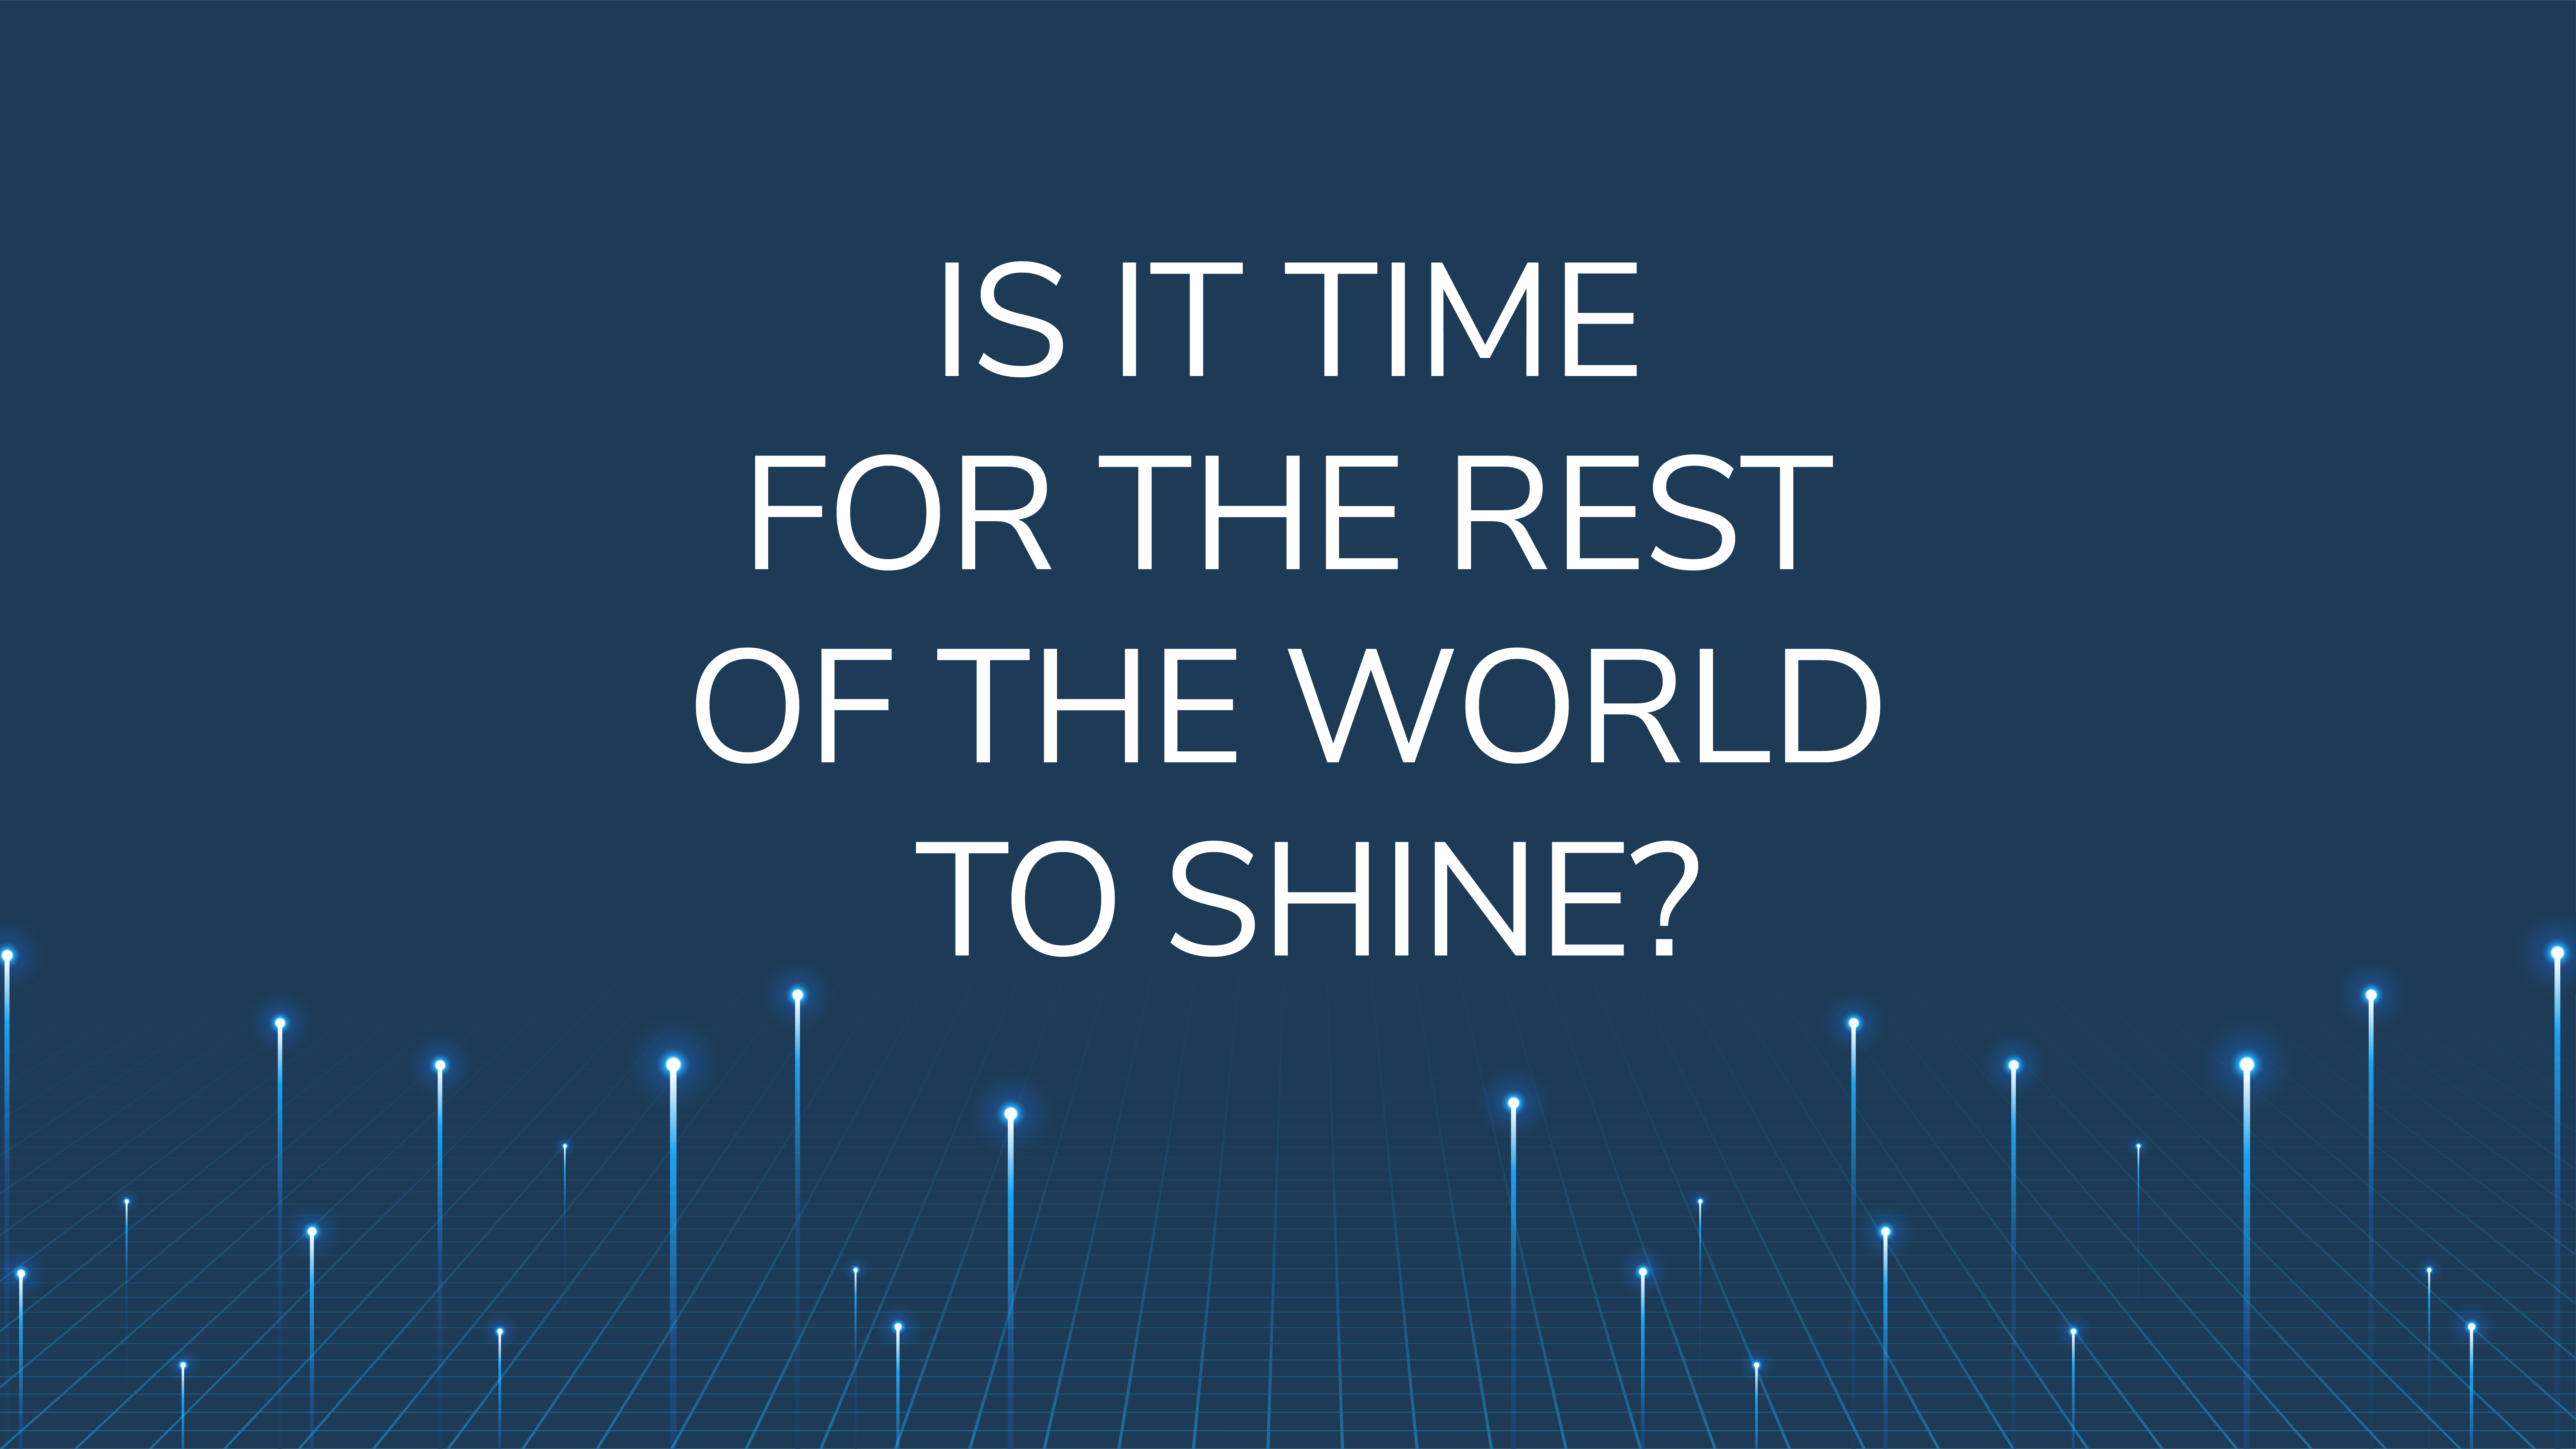 Is it Time for the Rest of the World to Shine?